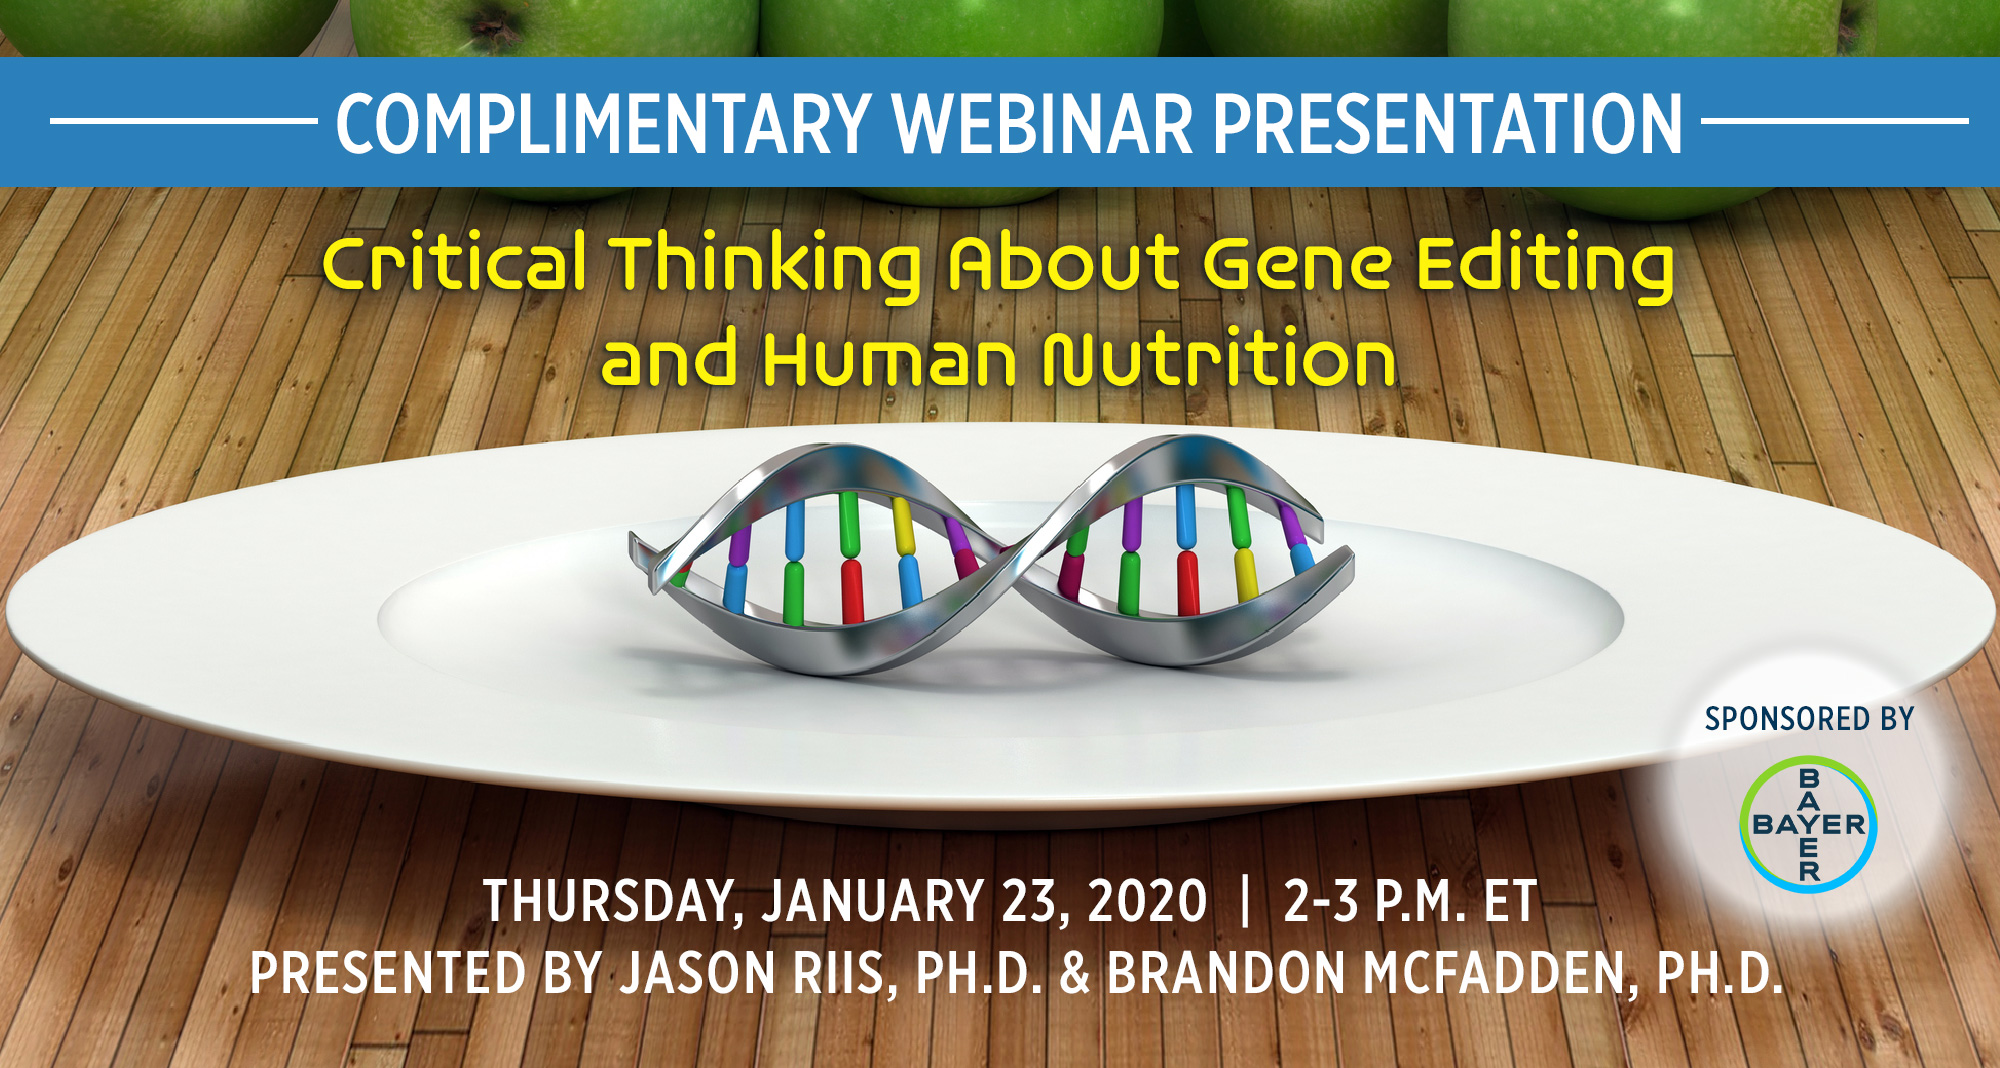 Complimentary Webinar Presentation: Critical Thinking About Gene Editing and Human Nutrition | Presented by Jason Riis, PH.D. & Brandon McFadden, PH.D.| Thursday, January 23, 2020, from 2-3 P.M. ET | Earn 1 CEU Free